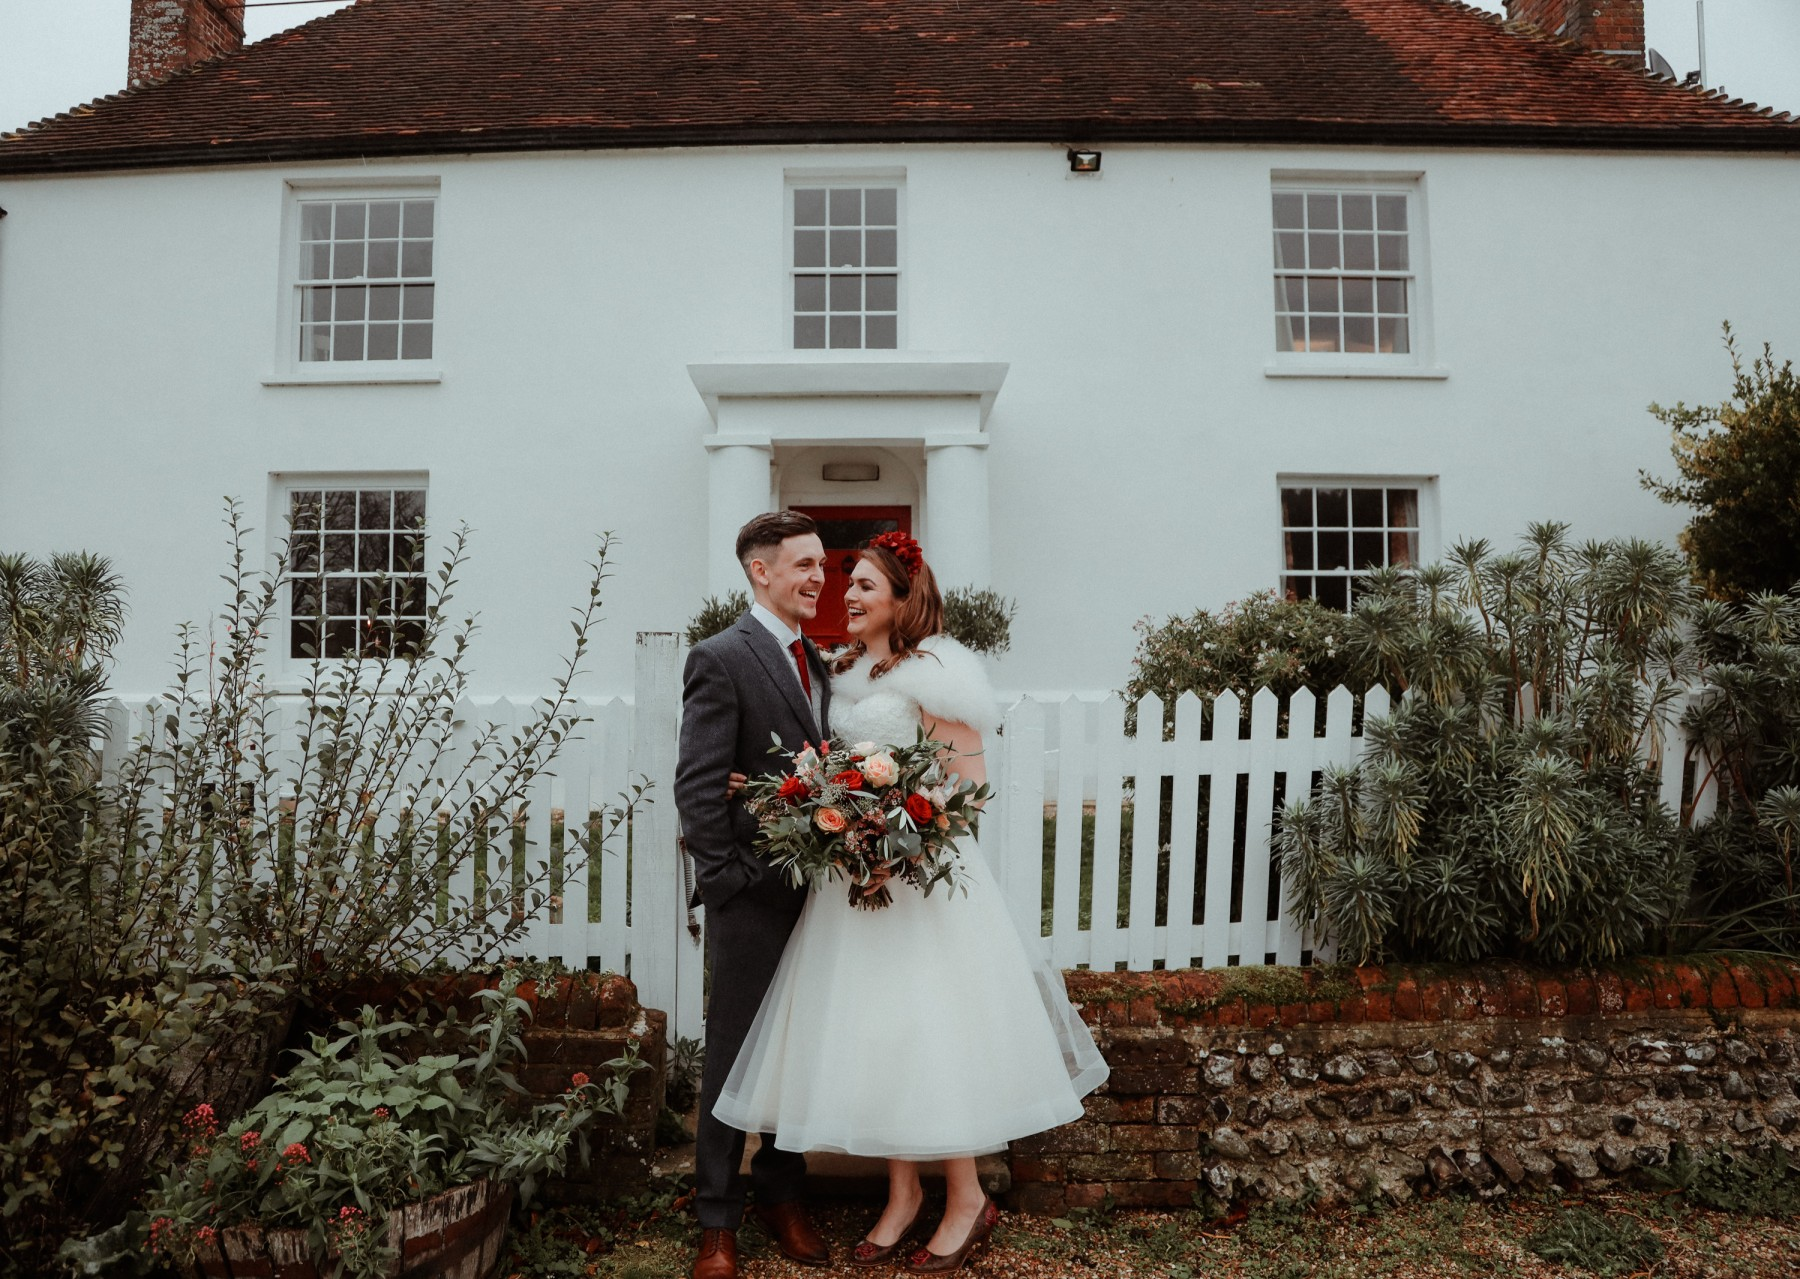 Great Betley Farmhouse wedding venue - Christmas micro wedding - christmas wedding - nhs wedding (3)